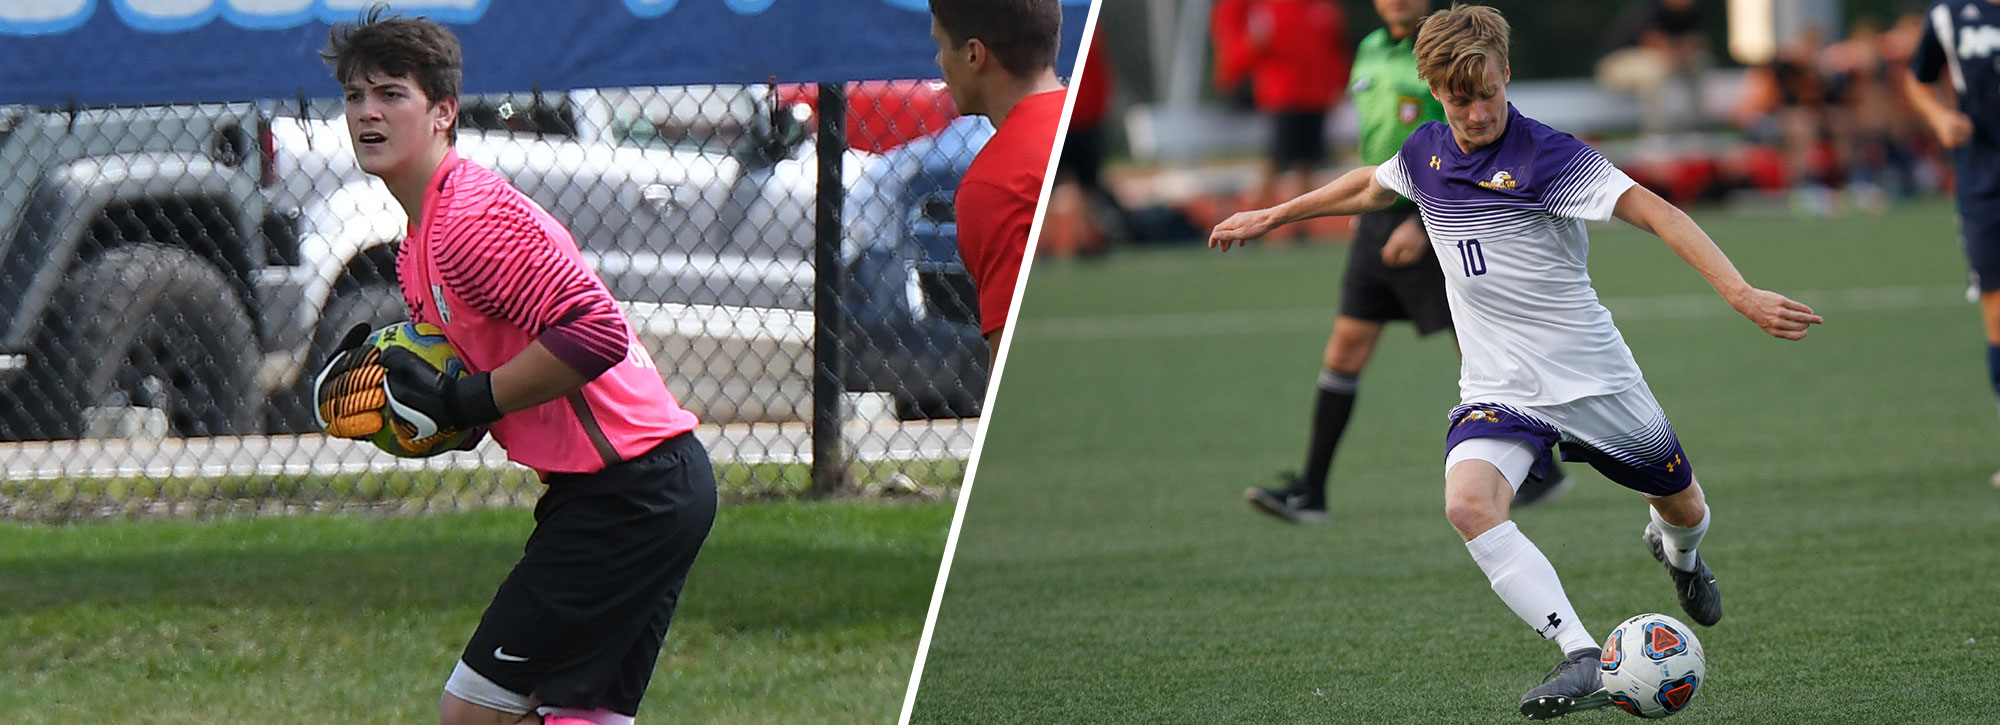 Ashland's Ardron, Northwood's Cecchini Gain Men's Soccer Weekly Honors